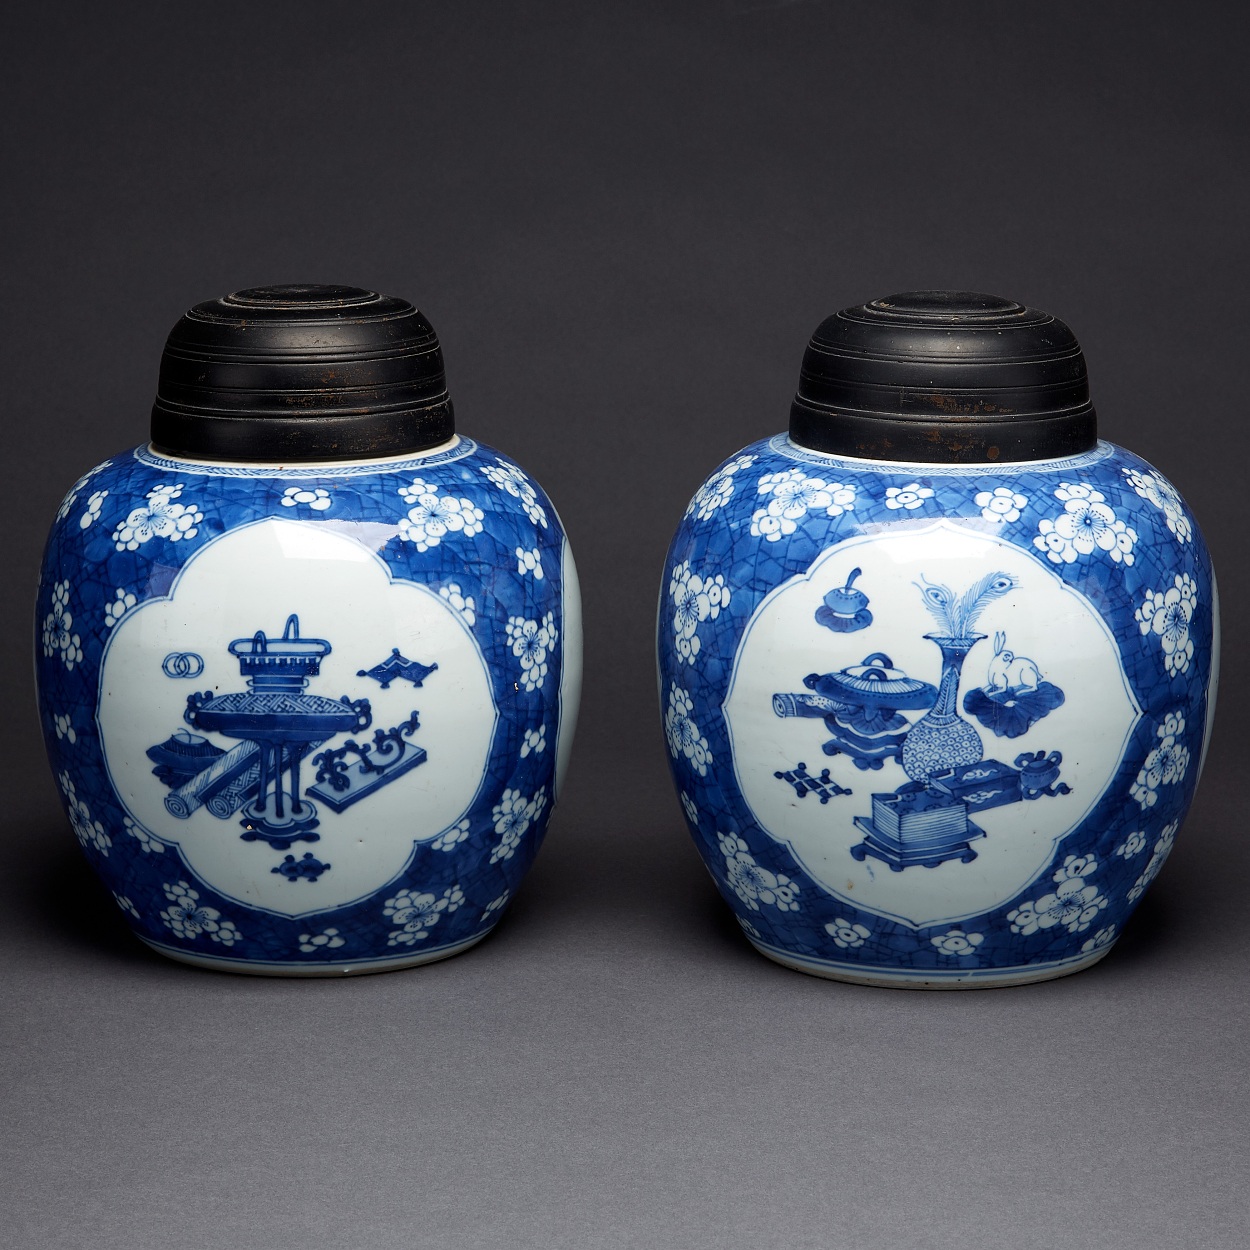 A Set of Two Blue and White Jars